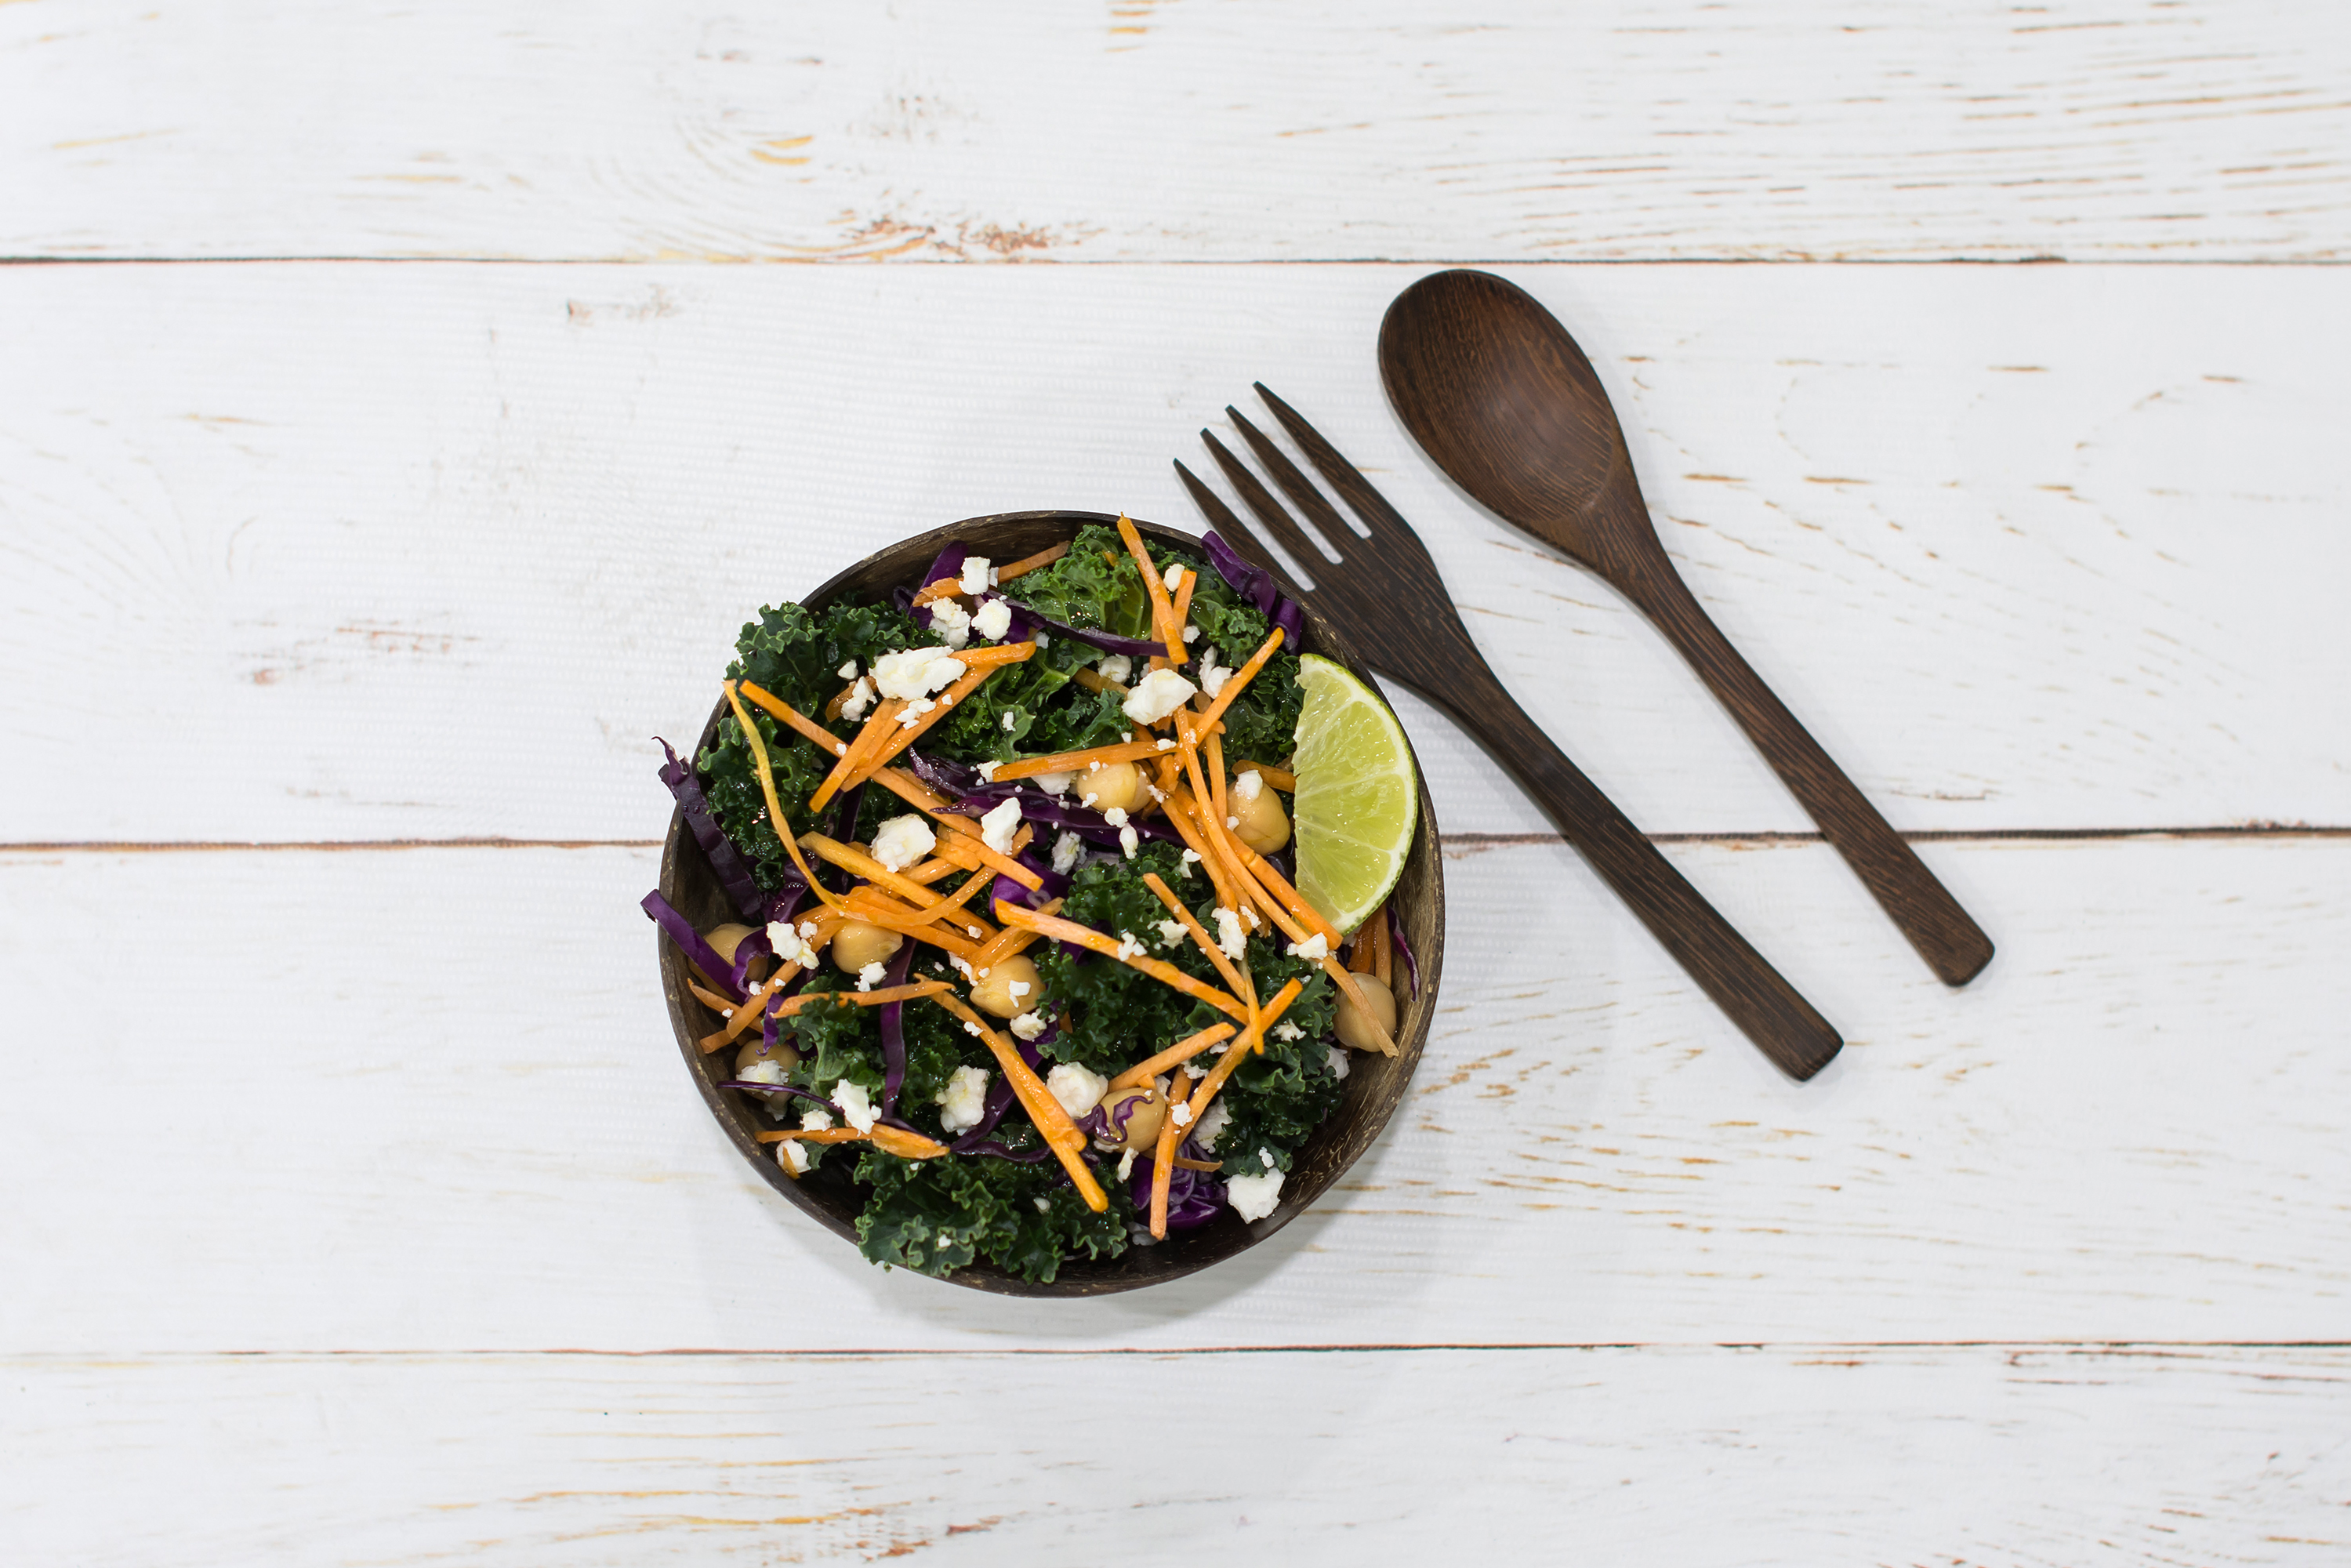 reusable-containers-salad-bowl-getty-0419